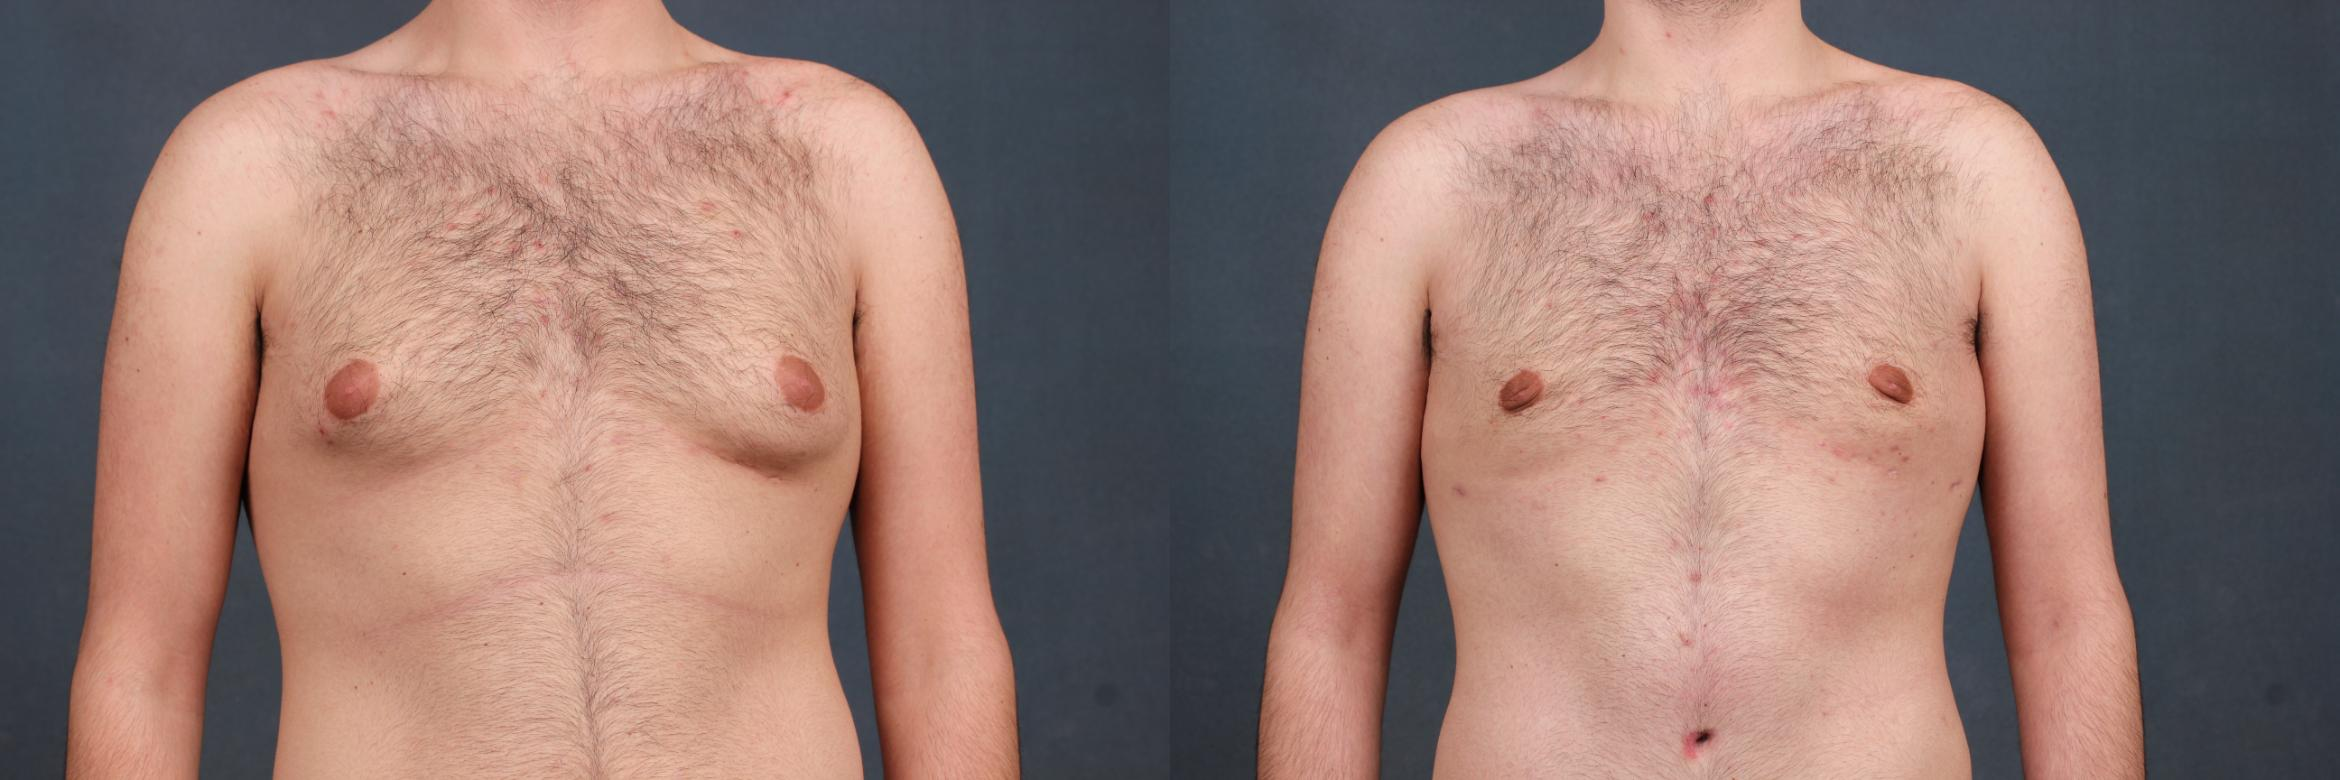 Male Breast Reduction Case 729 Before & After Front | Louisville, KY | CaloAesthetics® Plastic Surgery Center